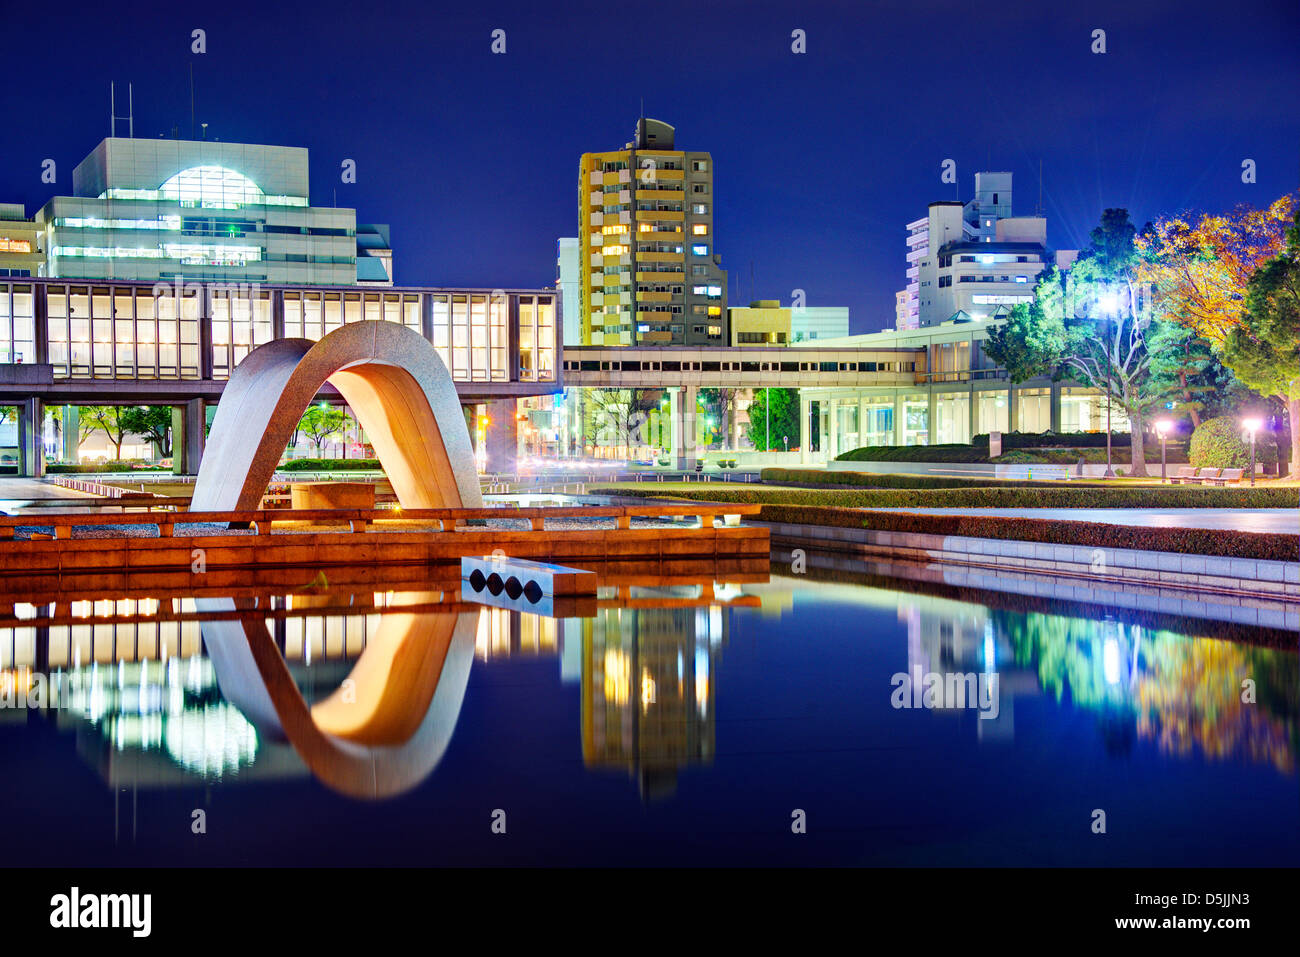 Hiroshima Peace Memorial Park in Hiroshima, Japan. - Stock Image